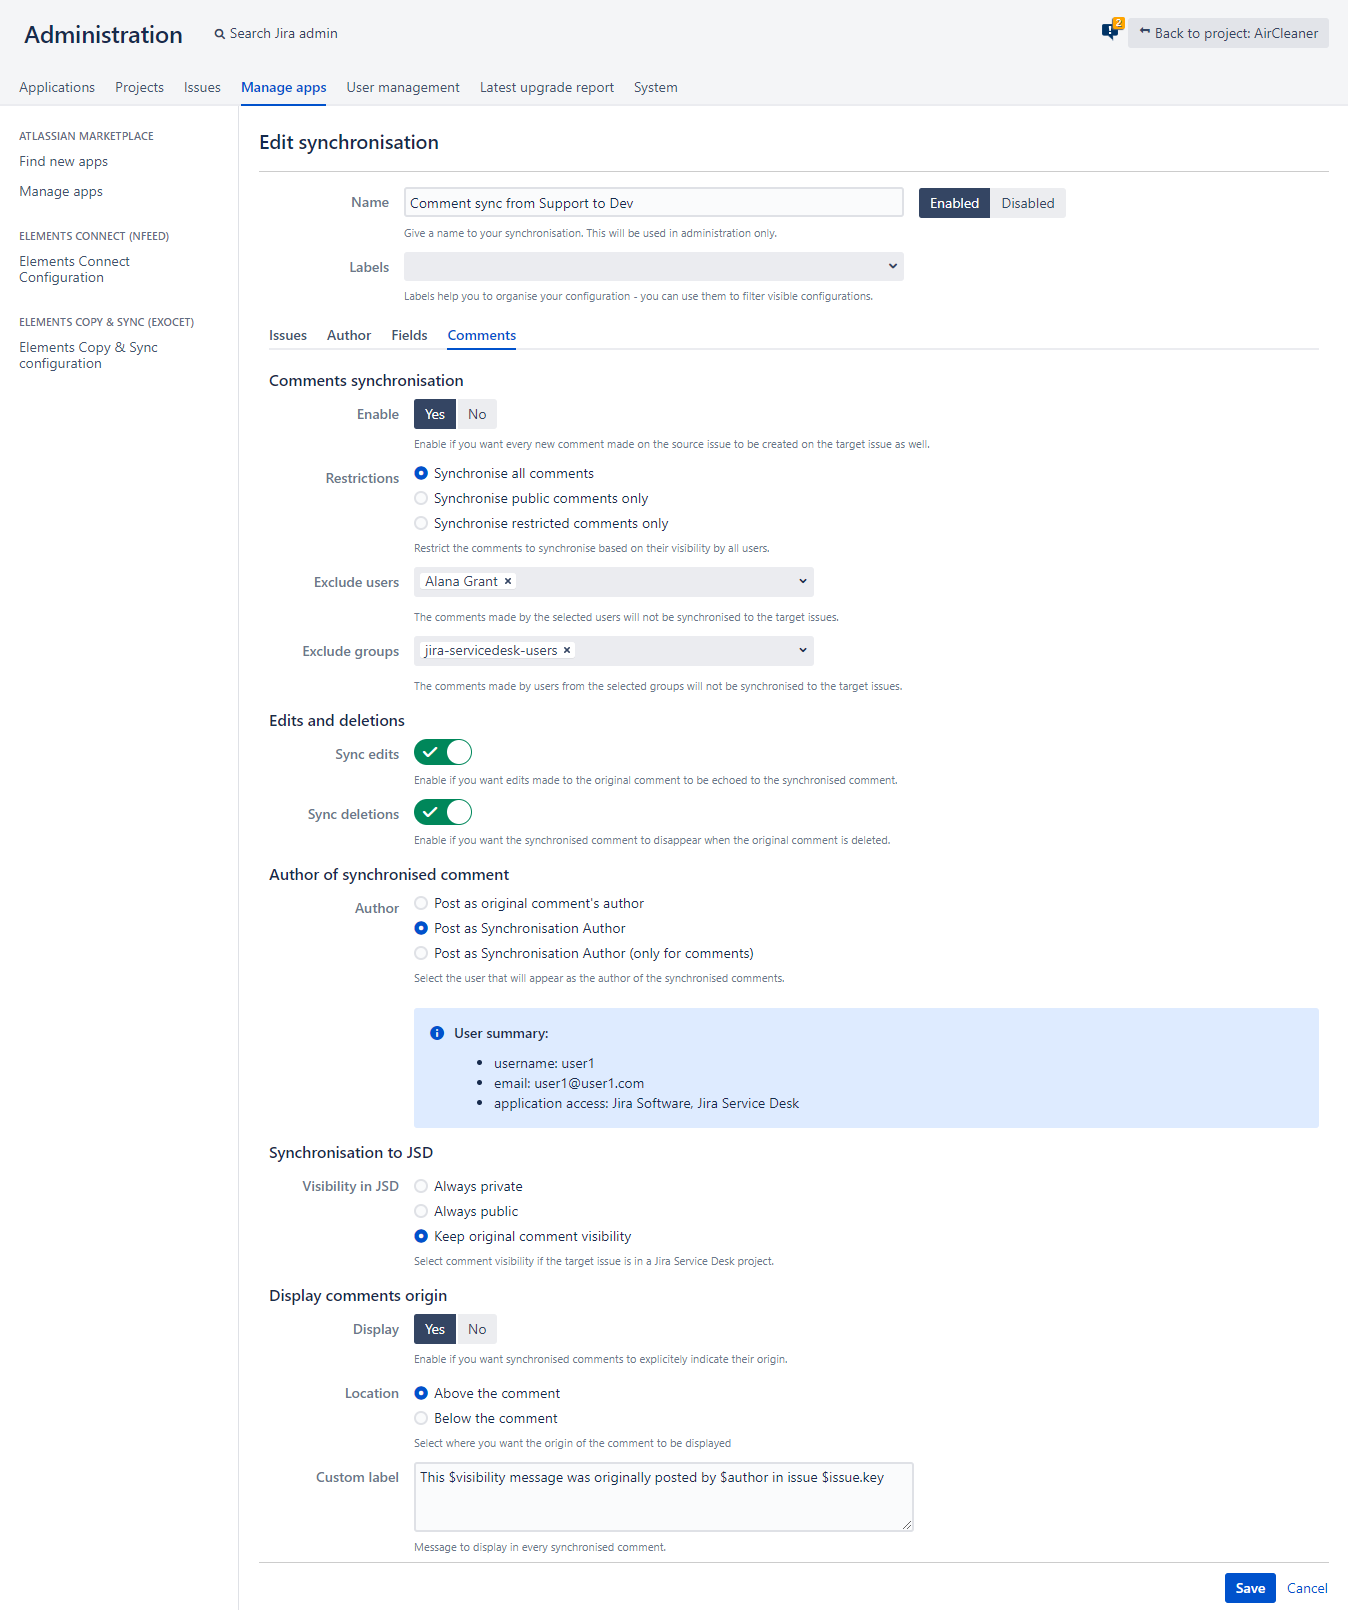 Jira Comments Synchronization with Copy and Sync